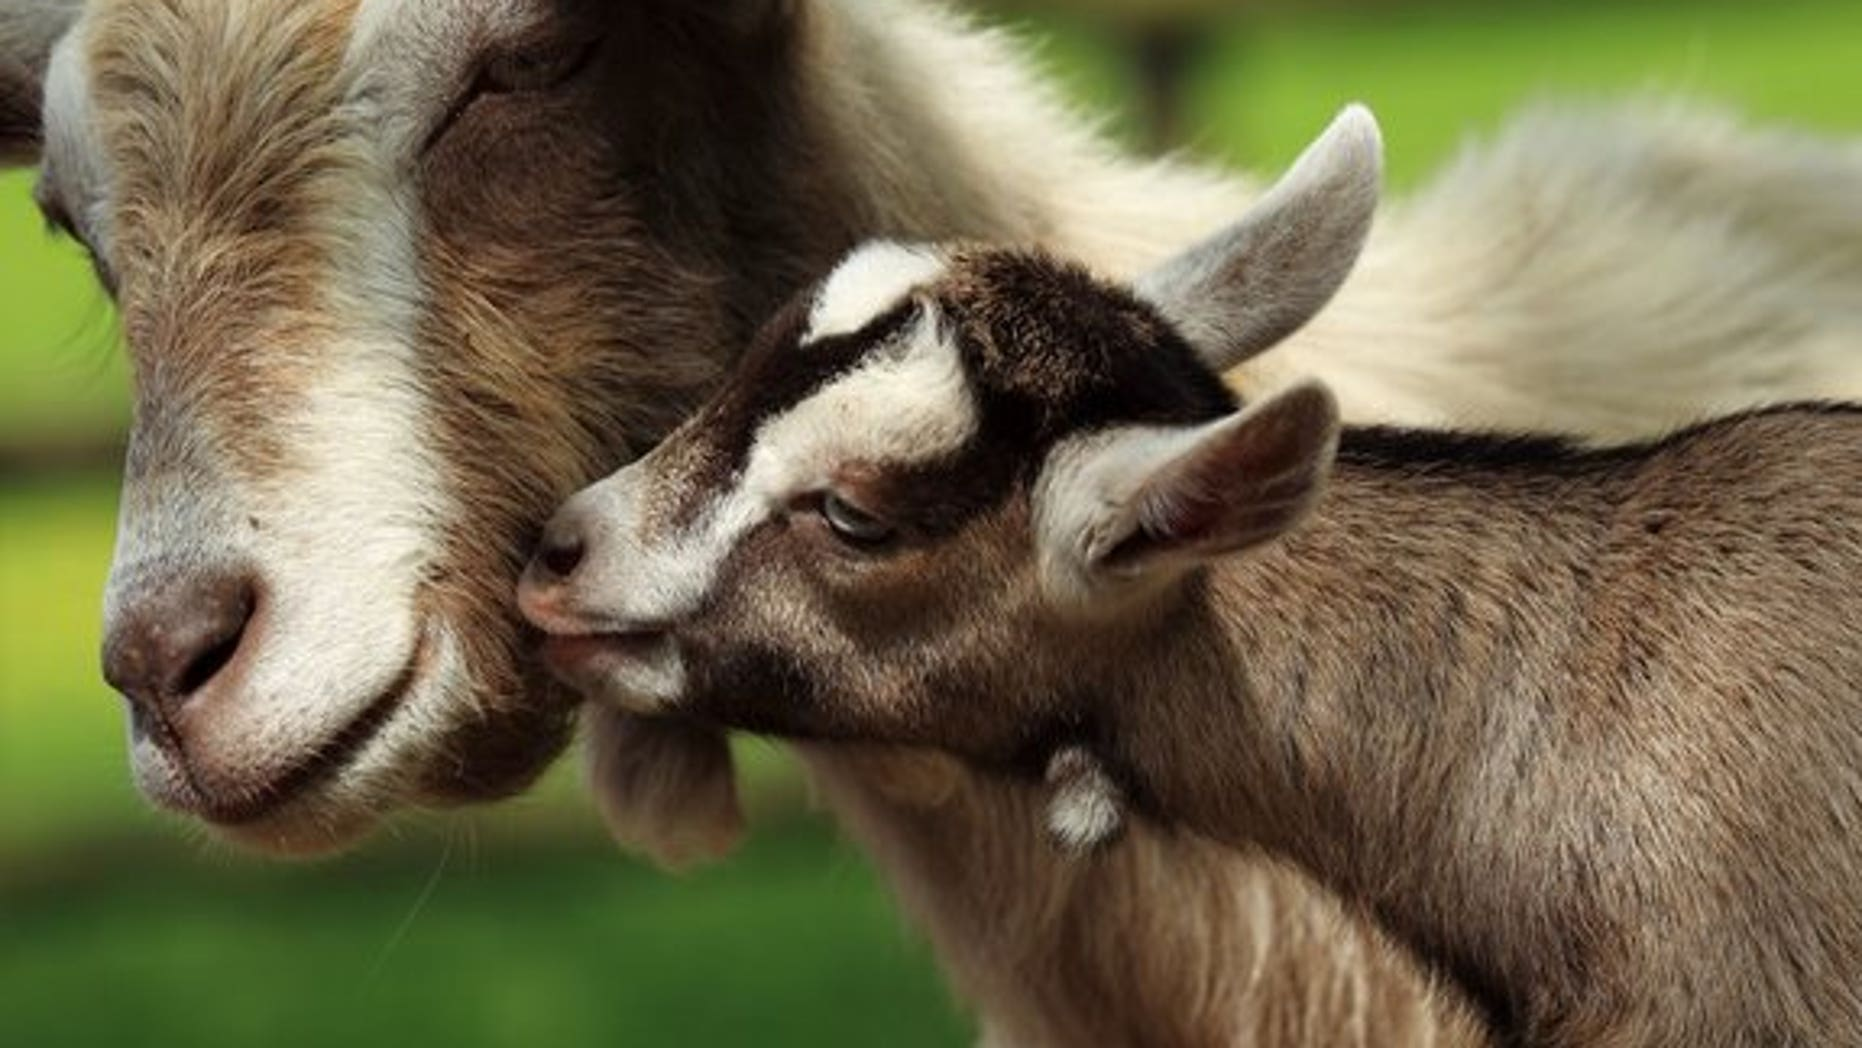 A baby goat nuzzles its mama.